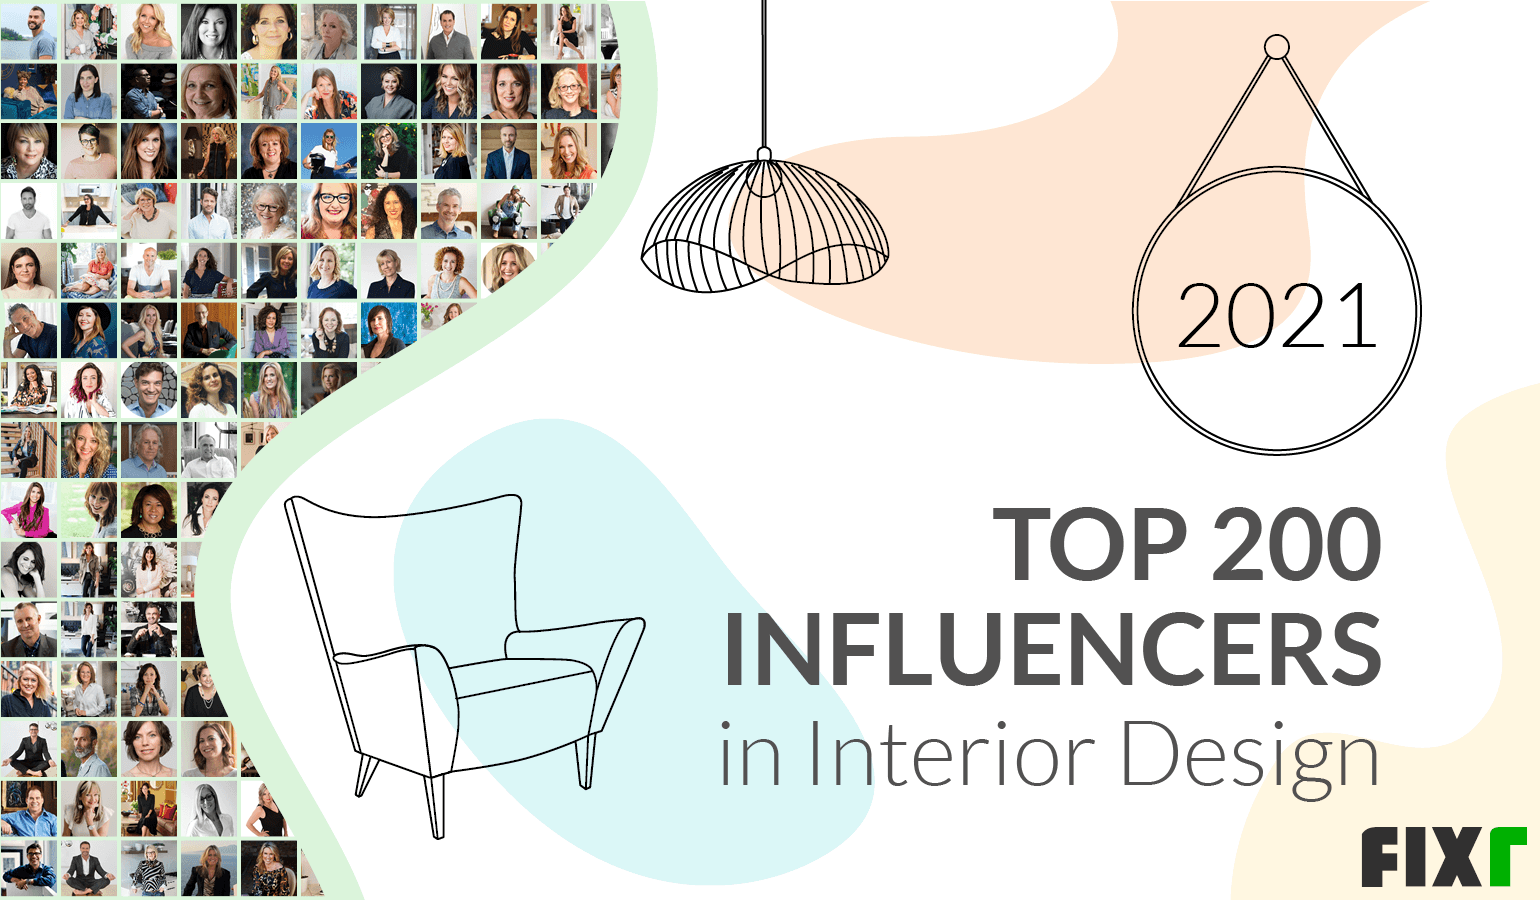 Top 200 Influencers in the Interior Design Industry 2021